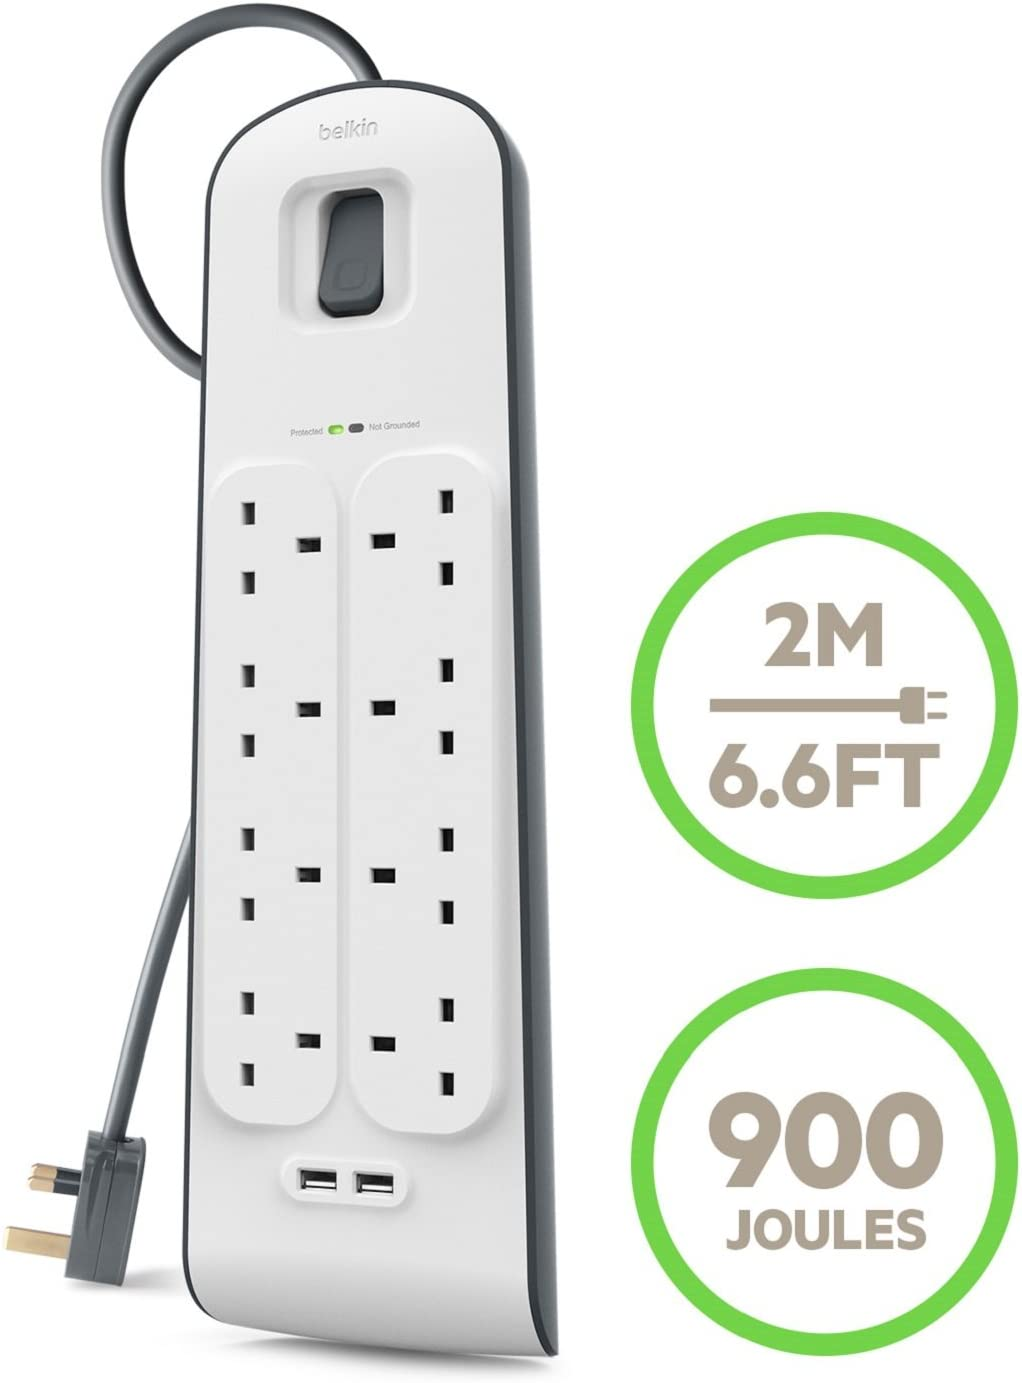 Belkin 8 Way 2m Surge Protection with 2 x USB Plugs 43% OFF £19.99 @ Amazon